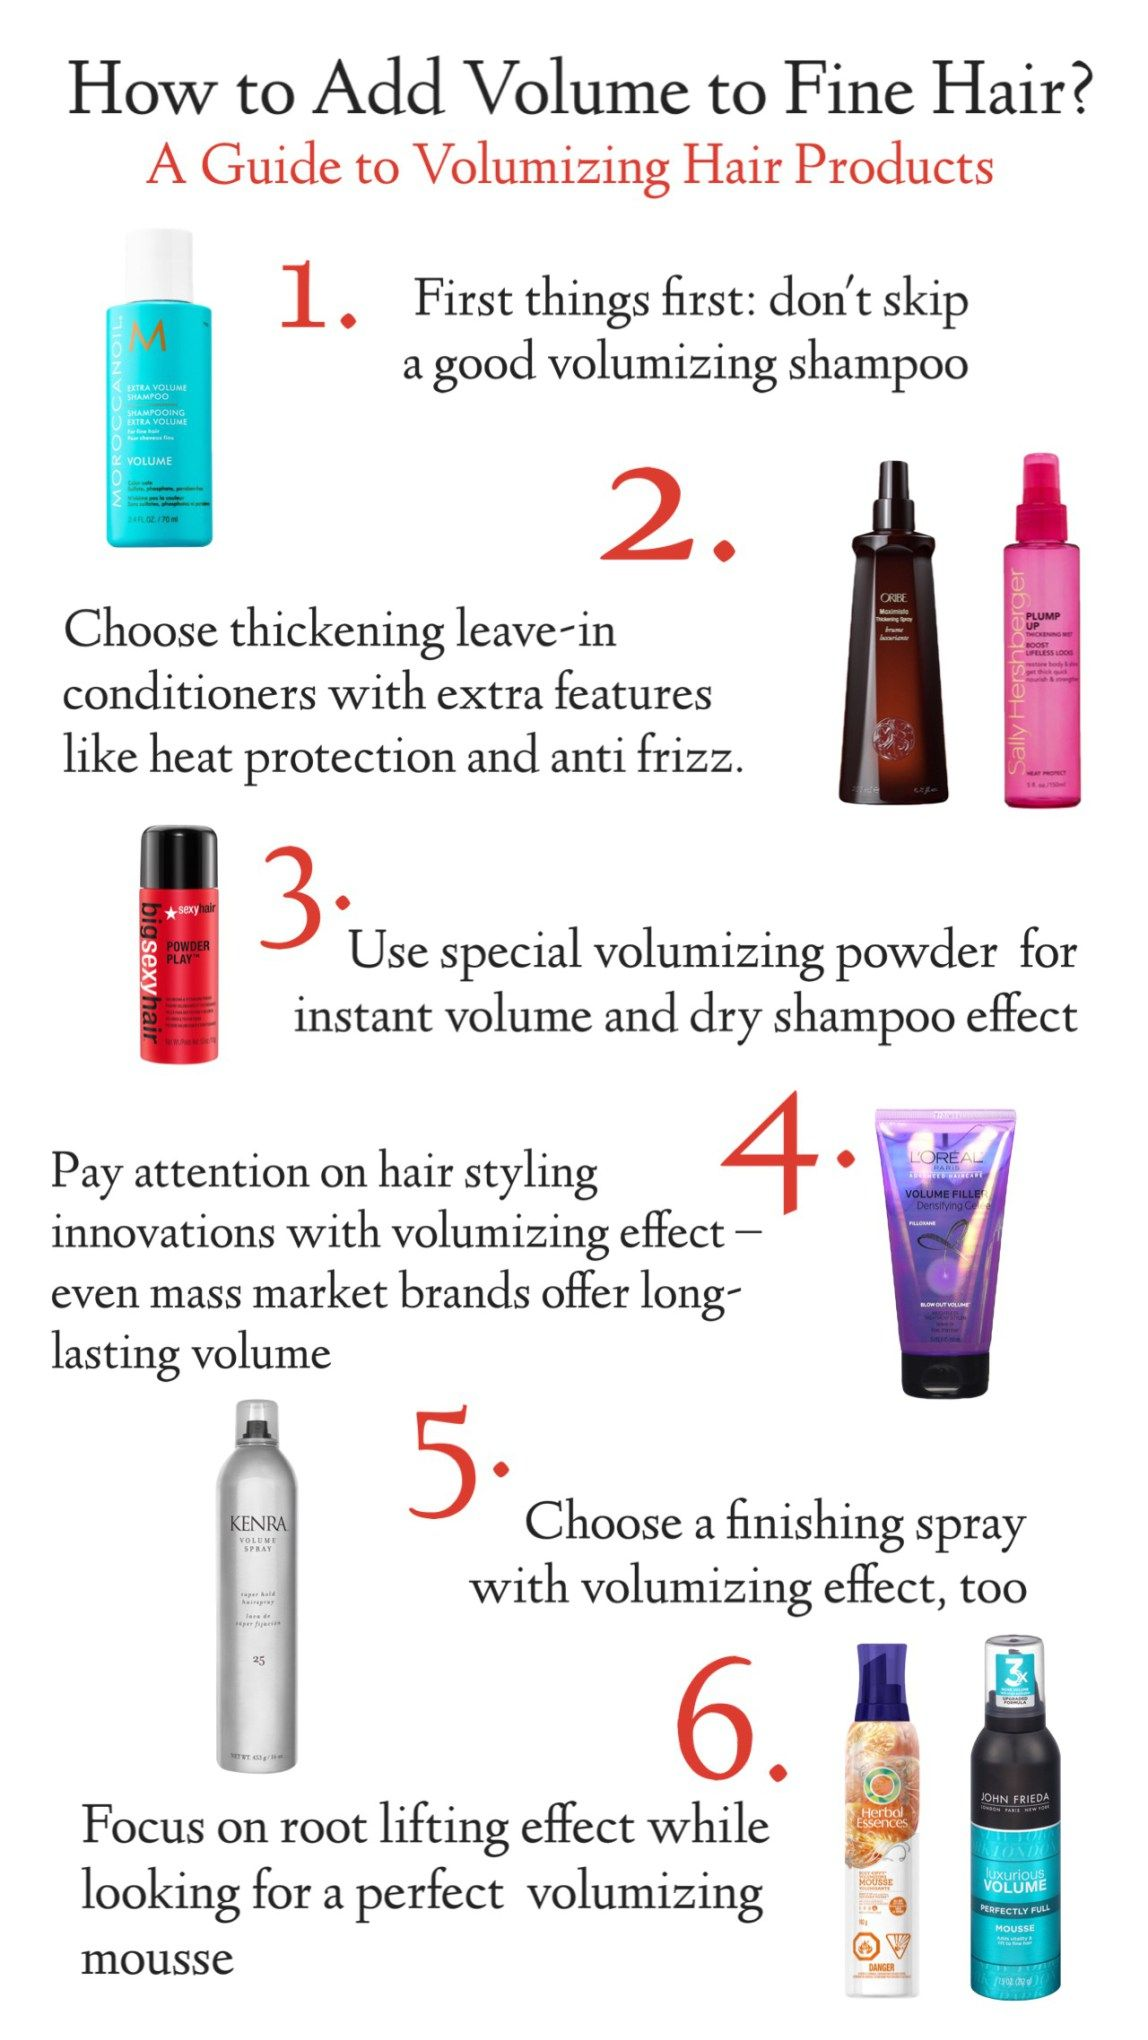 Top 7 Volumizing Hair Products for Fine Hair in 2020